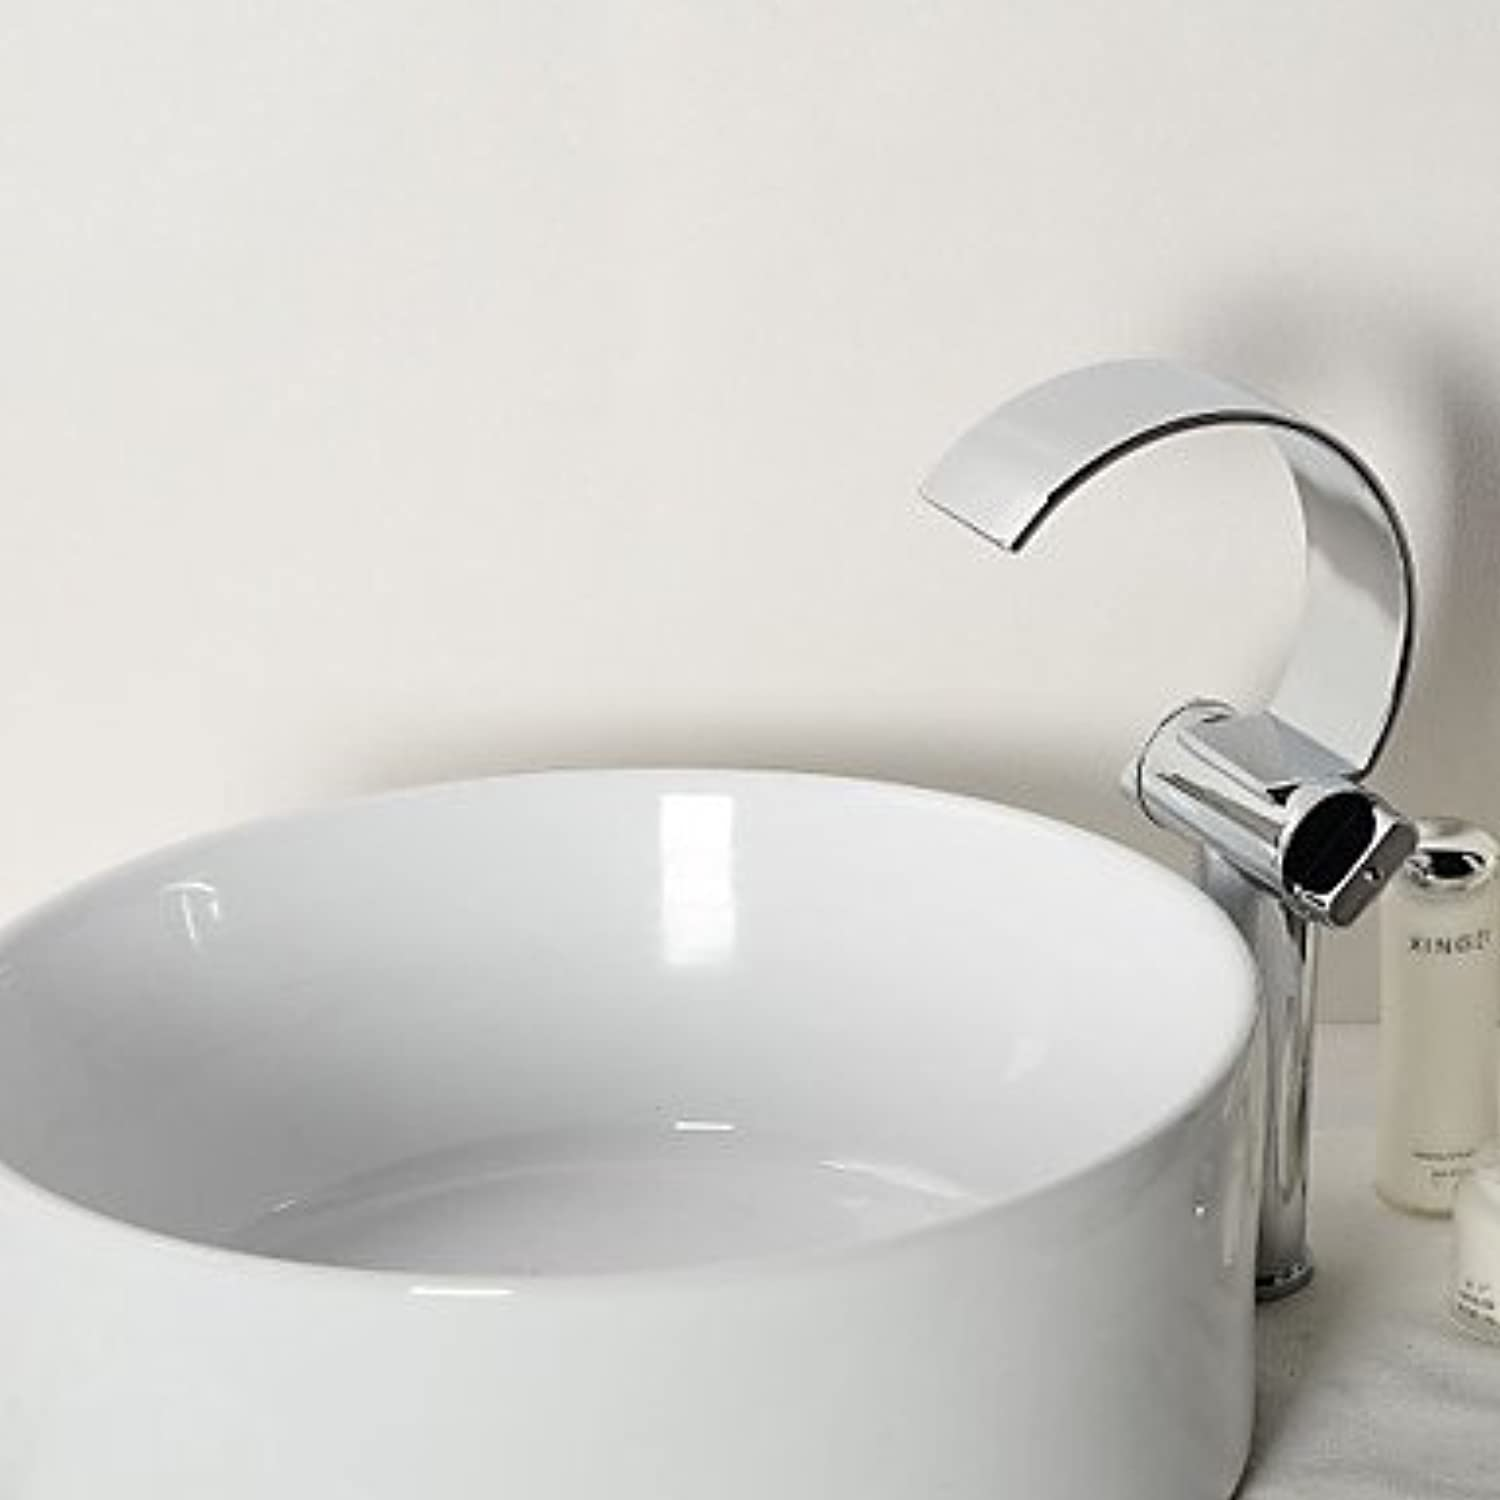 GDS Faucet£? Ceramic valve two contemporary ship falls for Chrome hand, bathroom sink faucets single hole